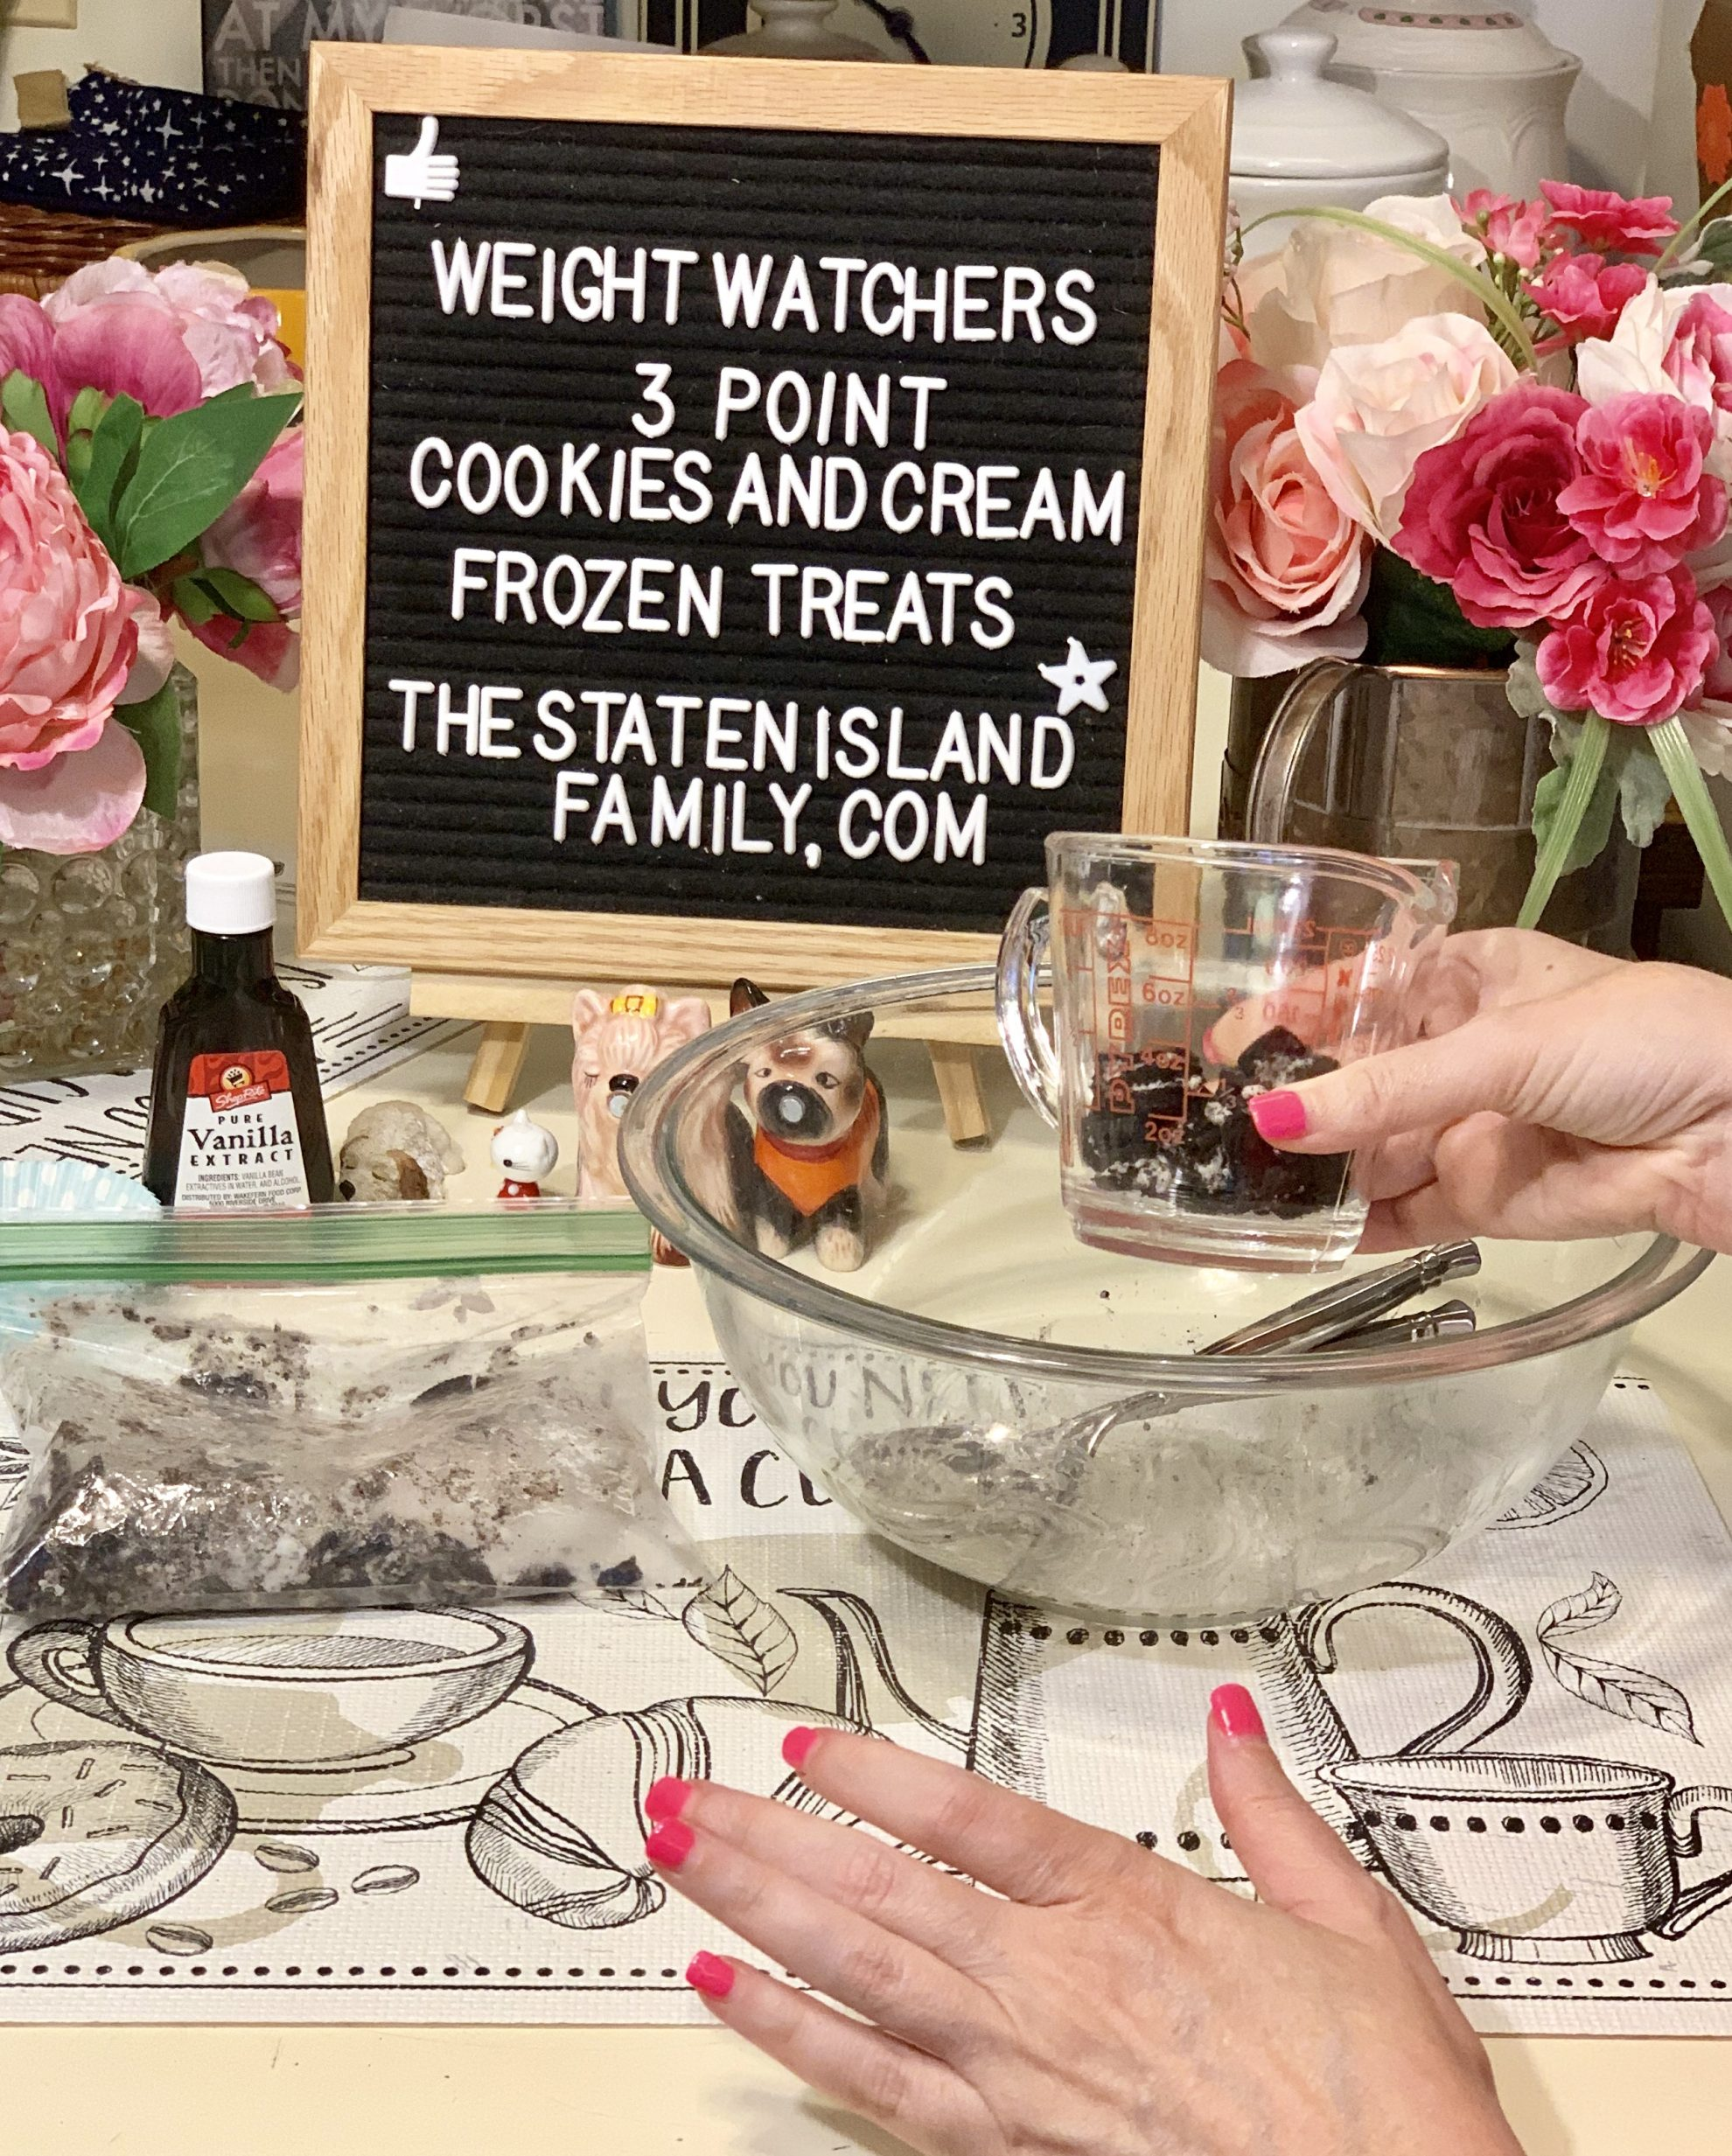 Weight Watchers Cookies and Cream Frozen Treats just three points per serving